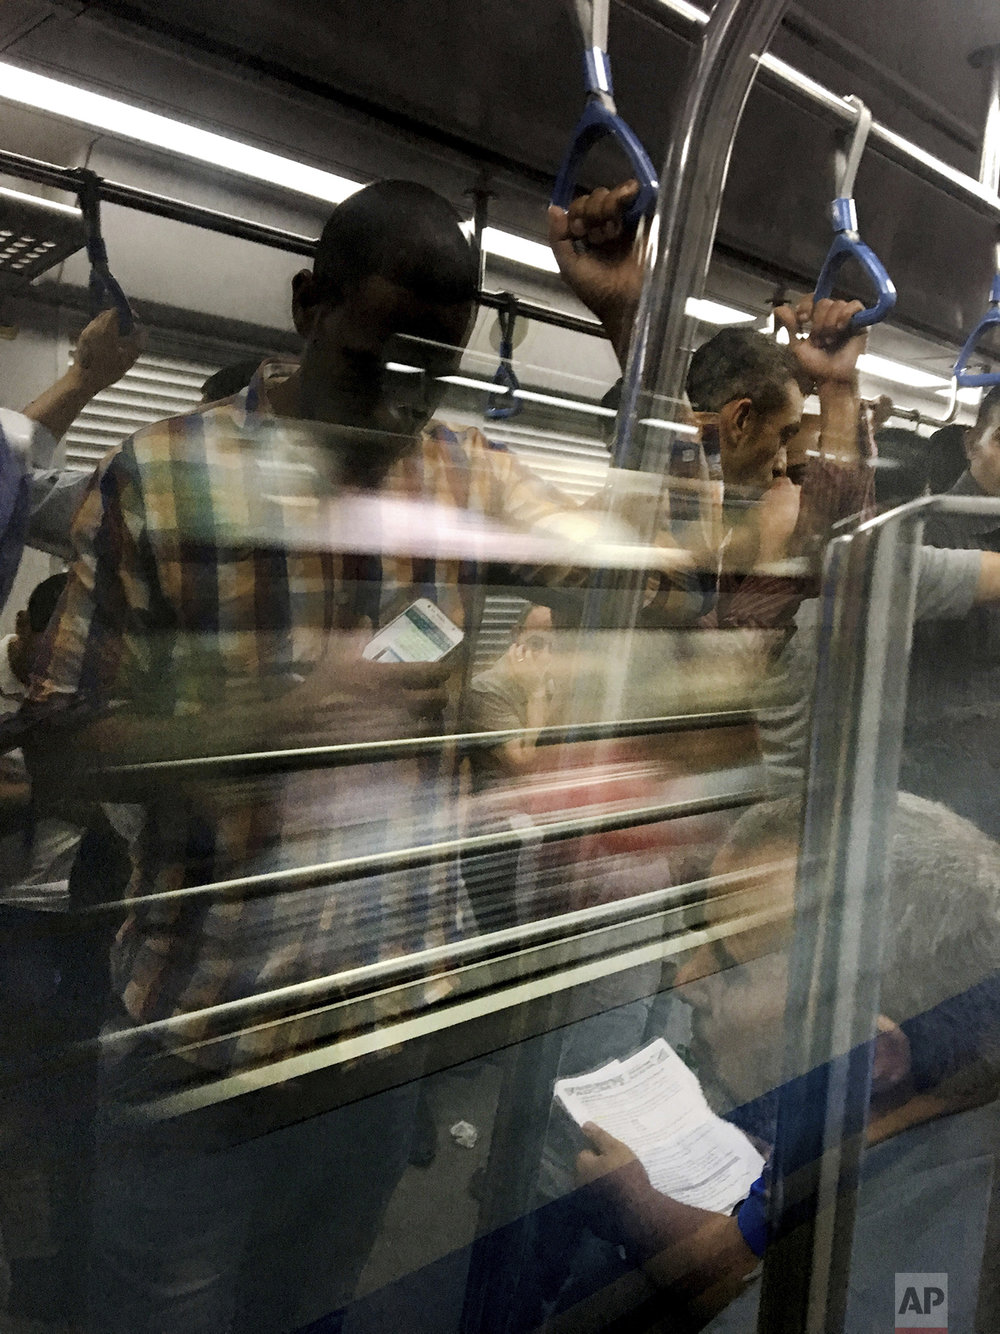 In this May 16, 2017 photo, commuters reflected in glass ride a metro car, in Cairo, Egypt. (AP Photo/Nariman El-Mofty)